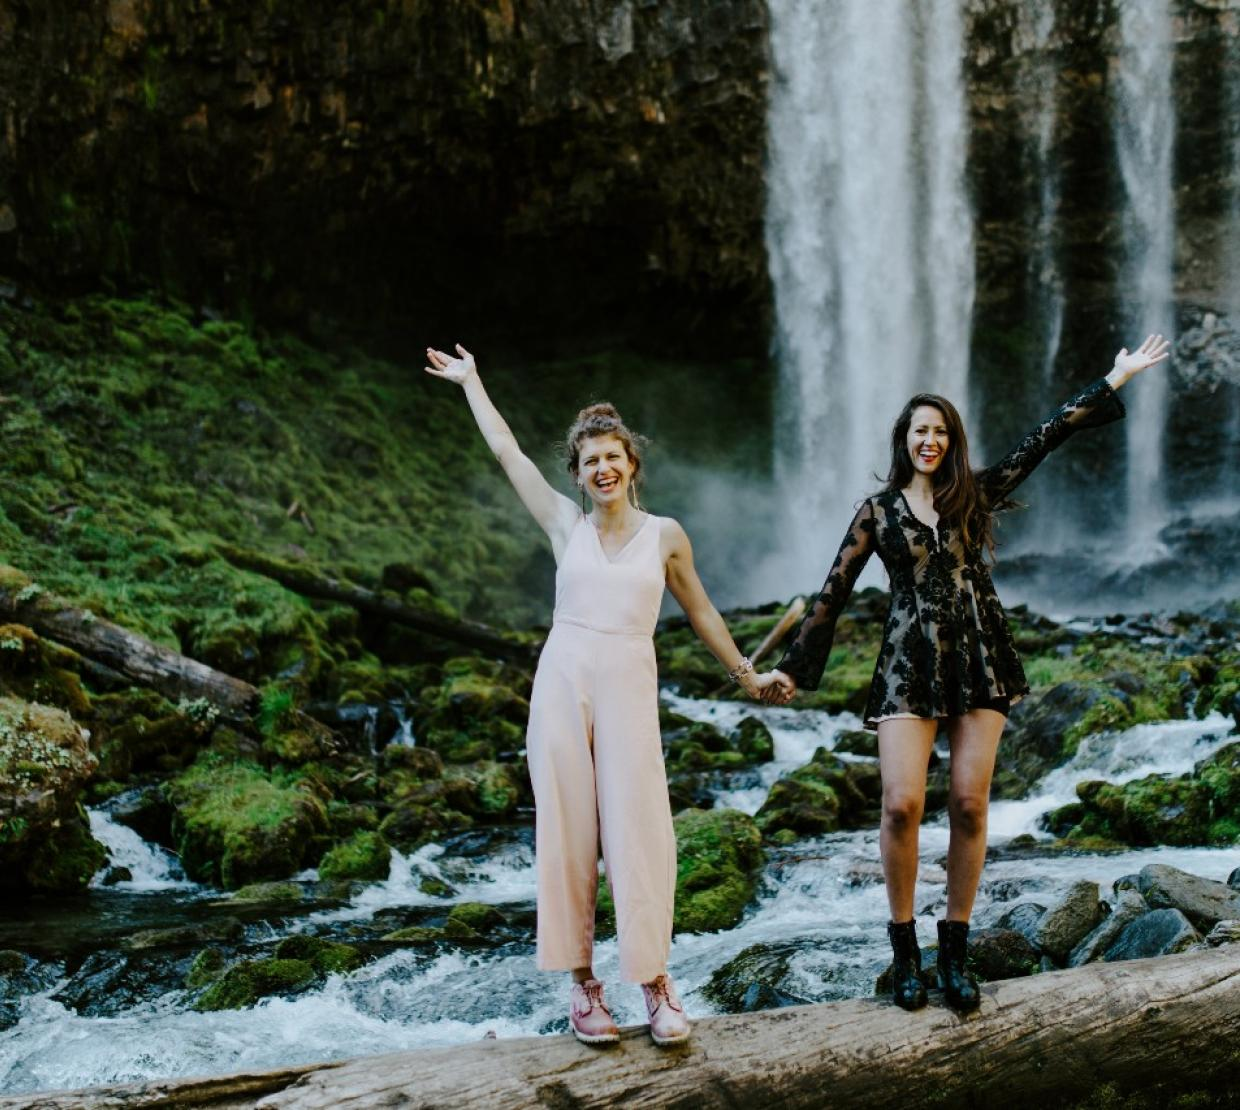 Heather Masson-Forsythe with her sister, Margaux, at a waterfall